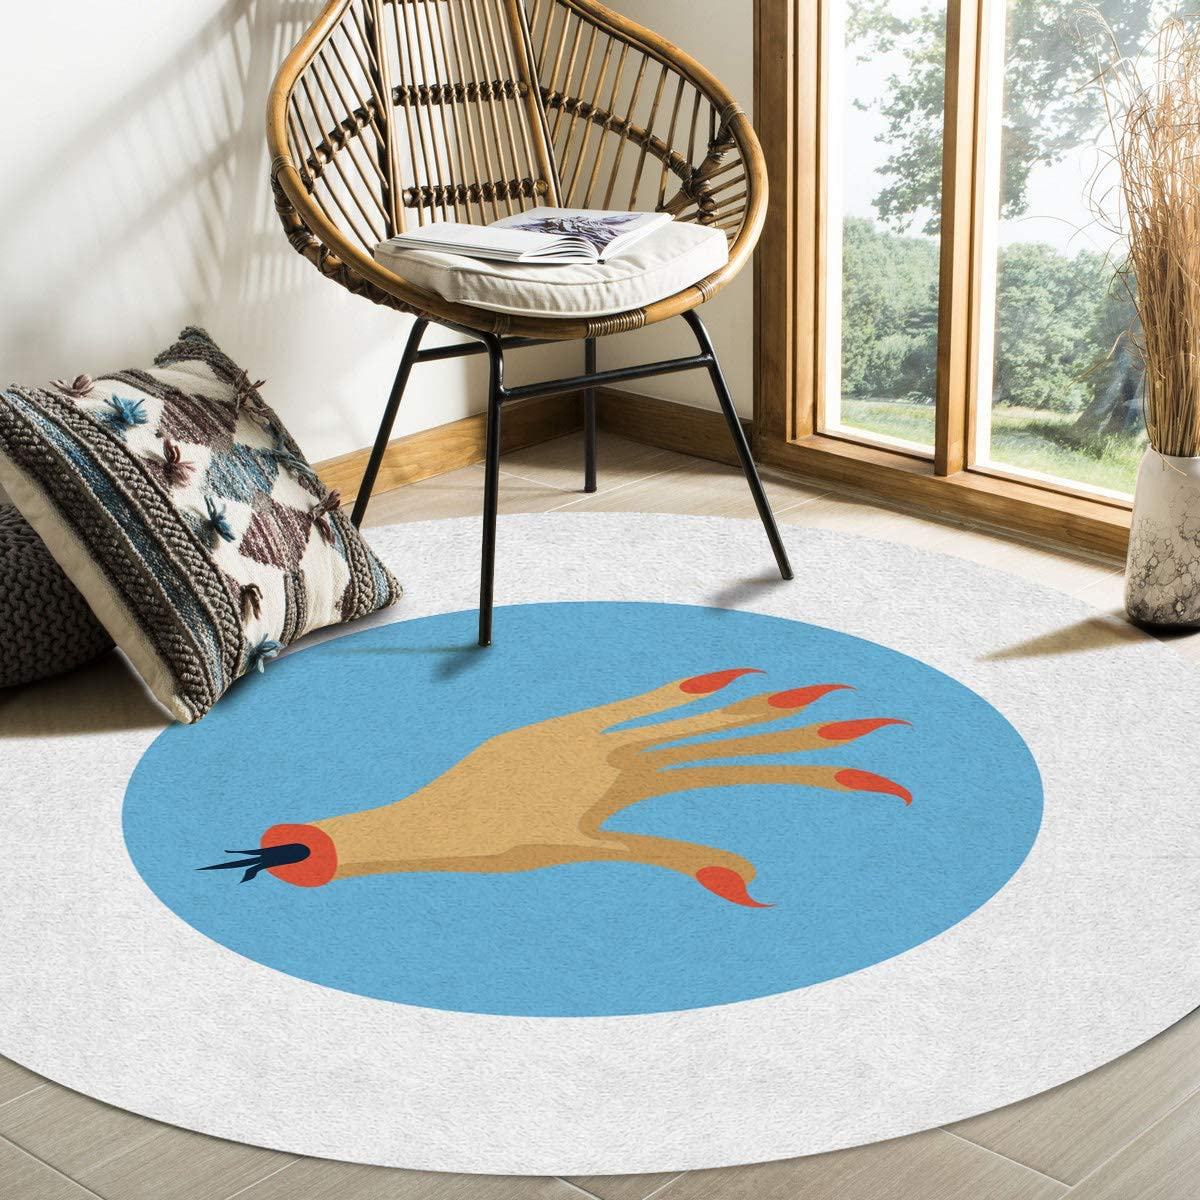 Modern Round Area Rug 6 for Bedroom Non-Shedding OFFicial shop Low-Profi Surprise price Feet